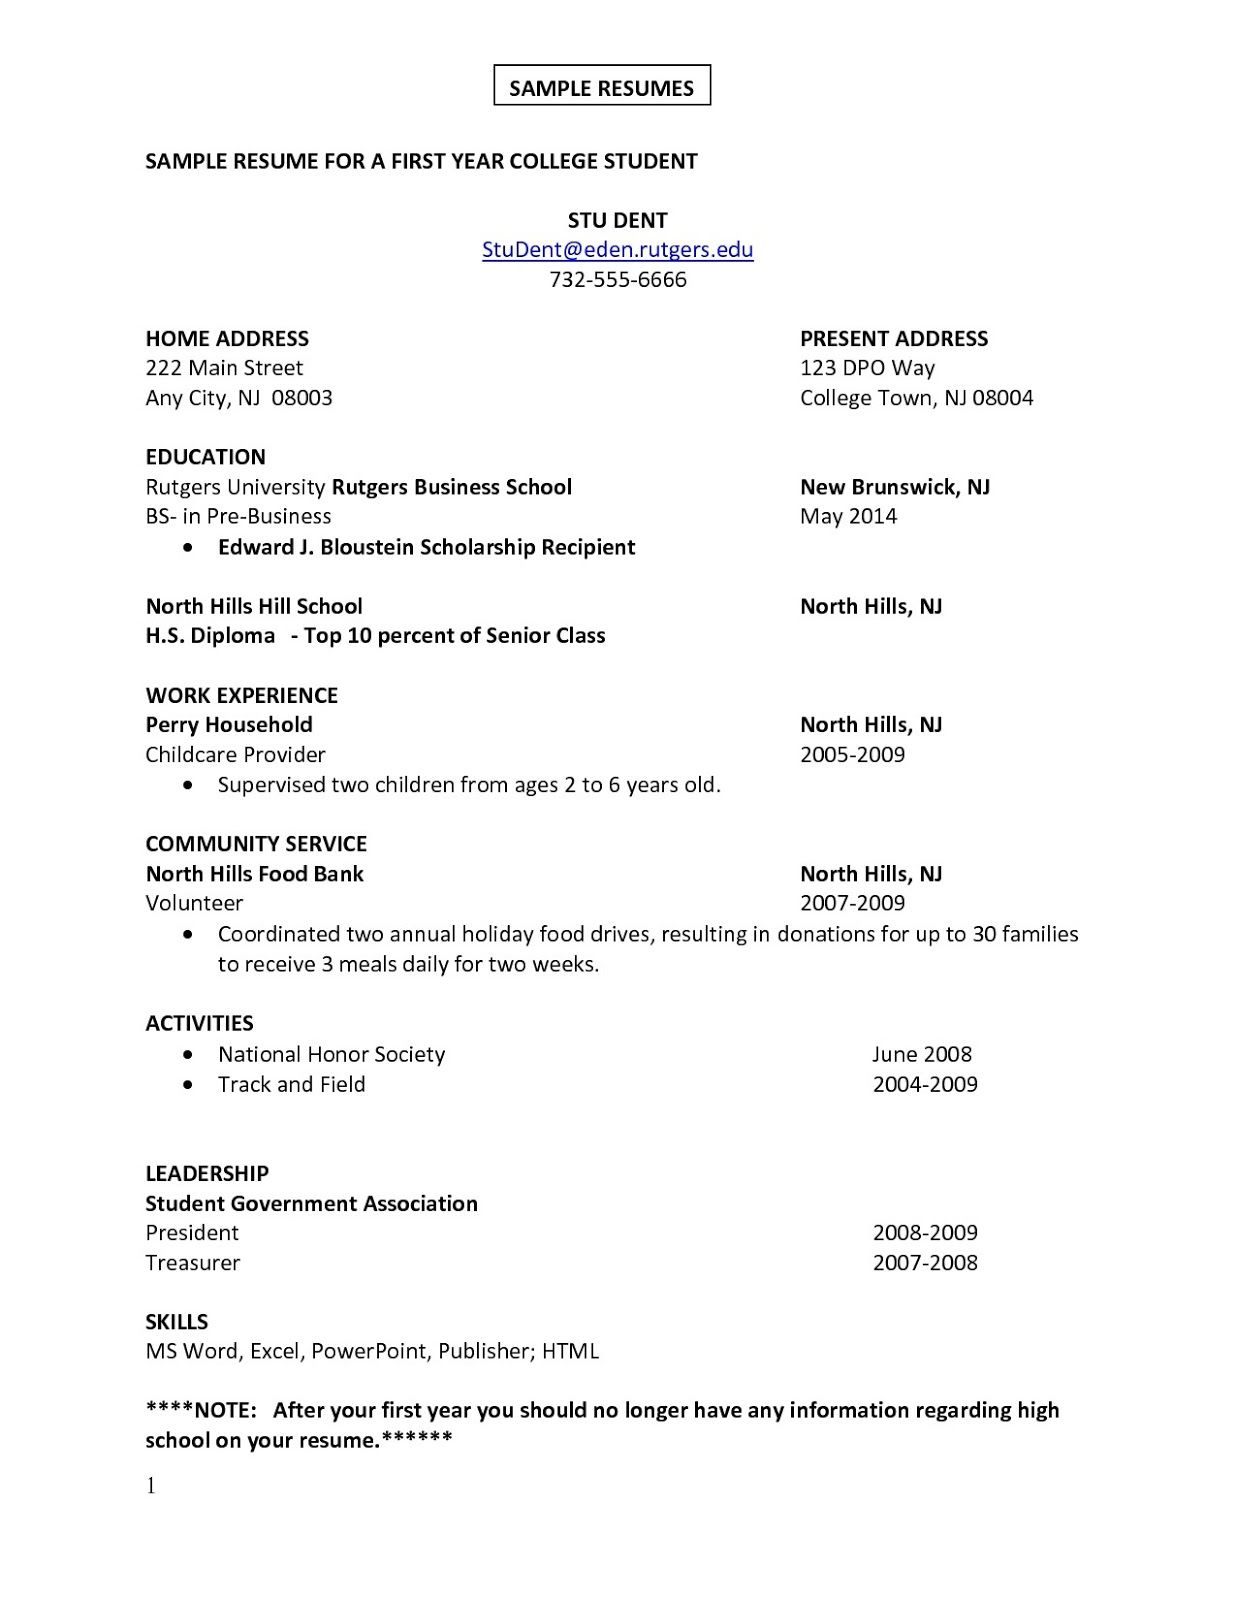 First Job Sample Resume Sample Resumes First Job Resume Student Resume Job Resume Samples